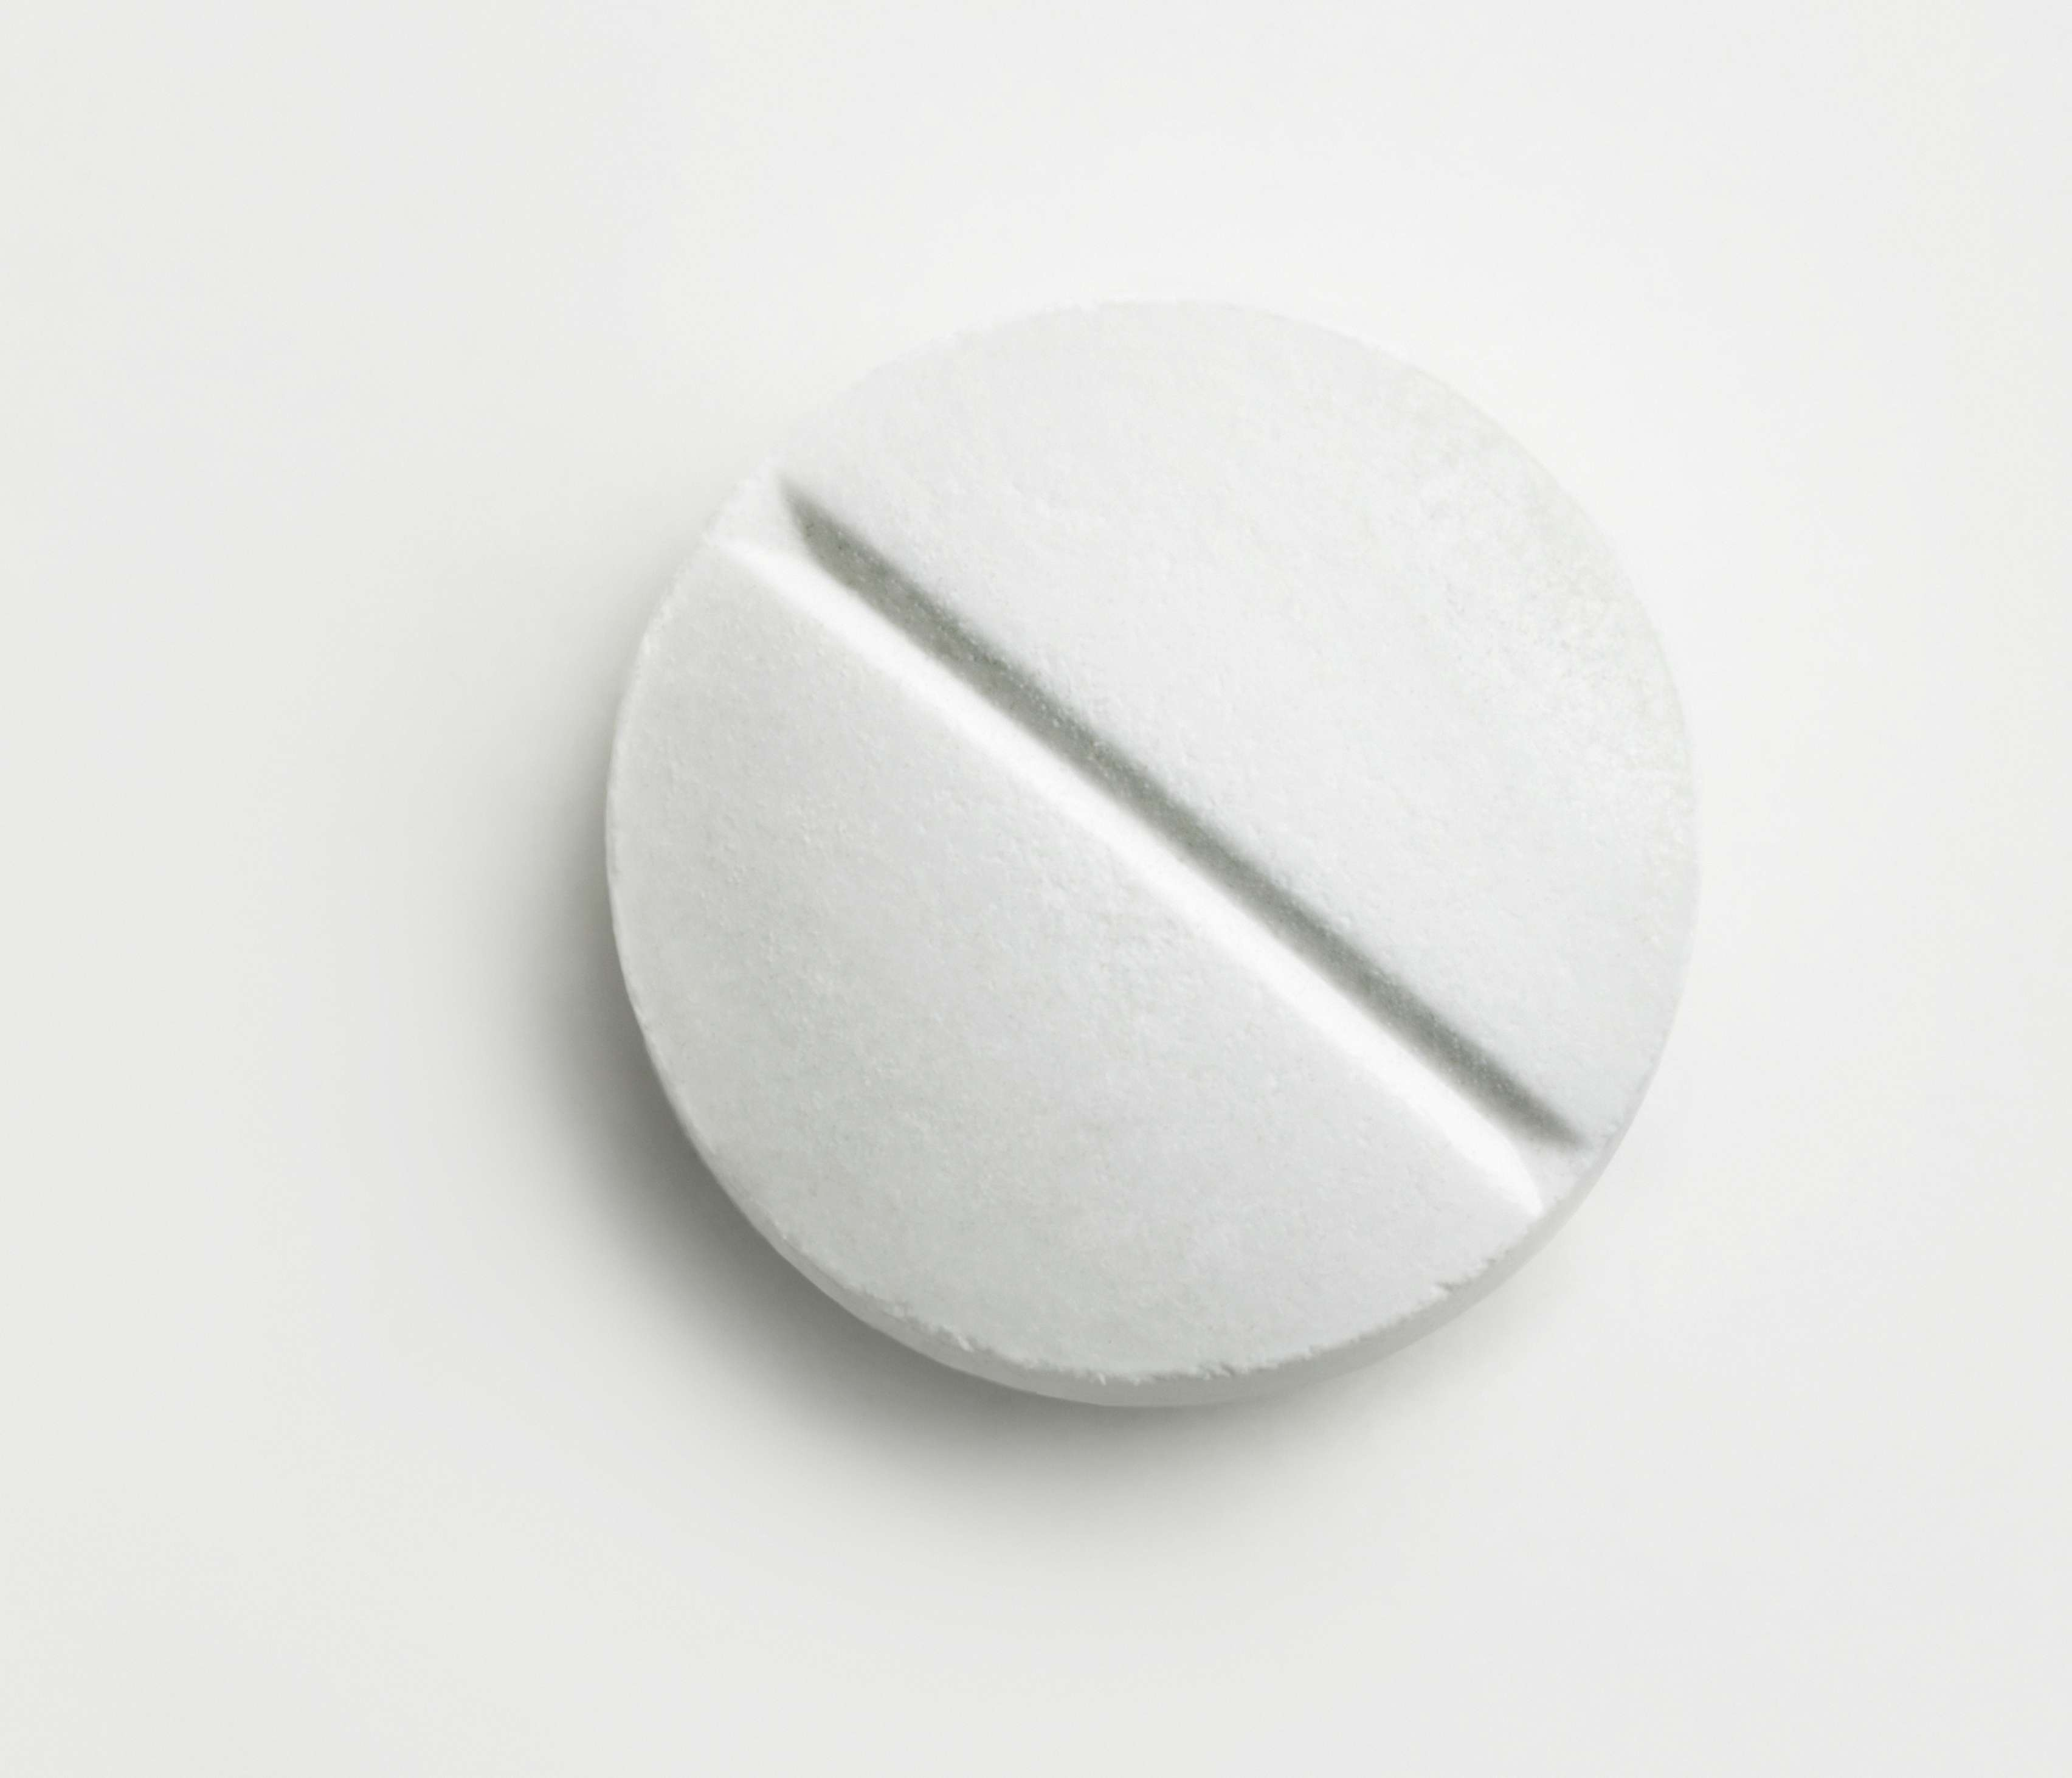 Prednisone Side Effects and Resources